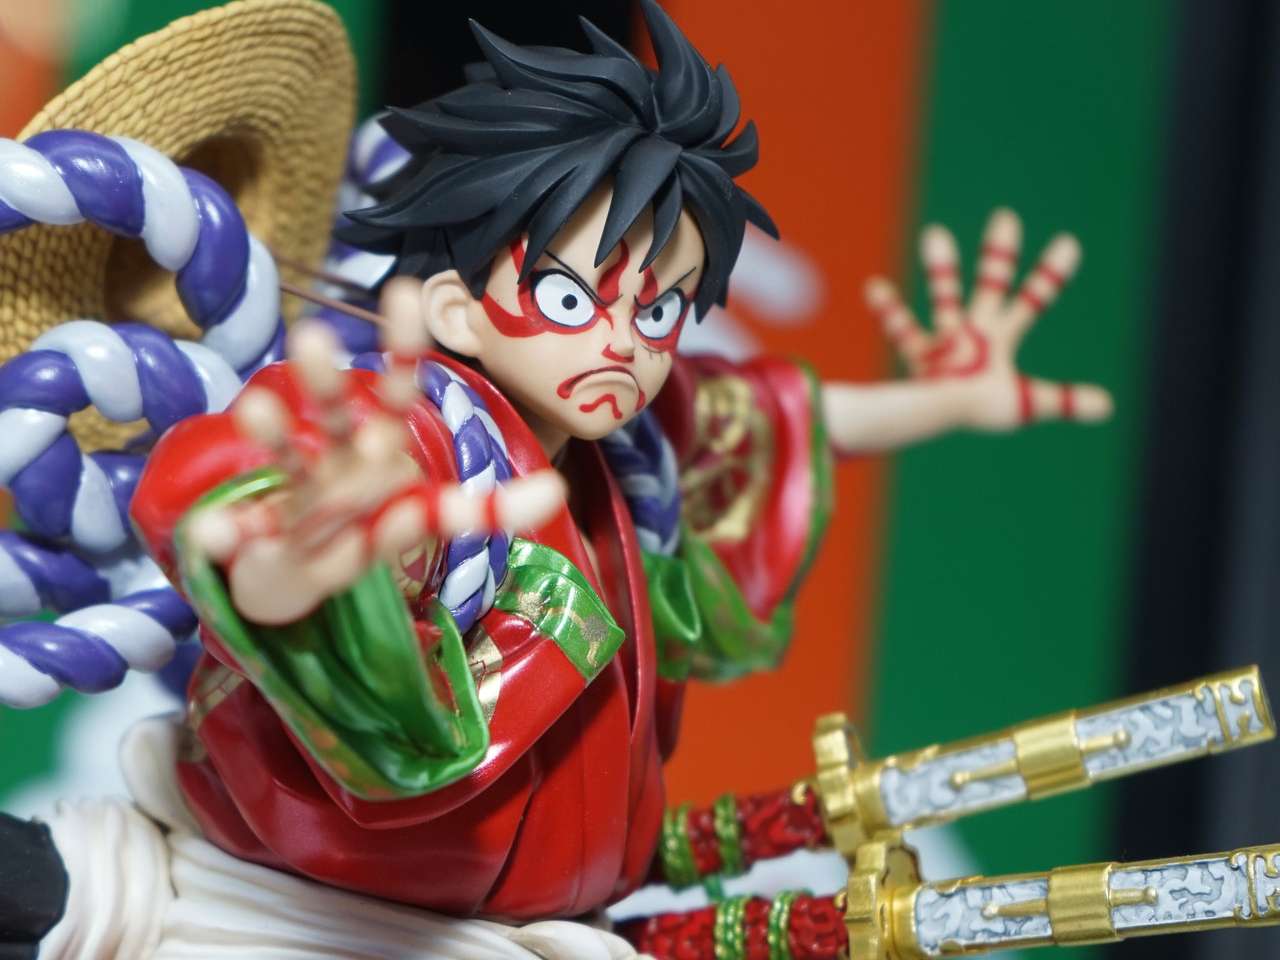 EXPO02 HABUKI Monkey D. Luffy pic01